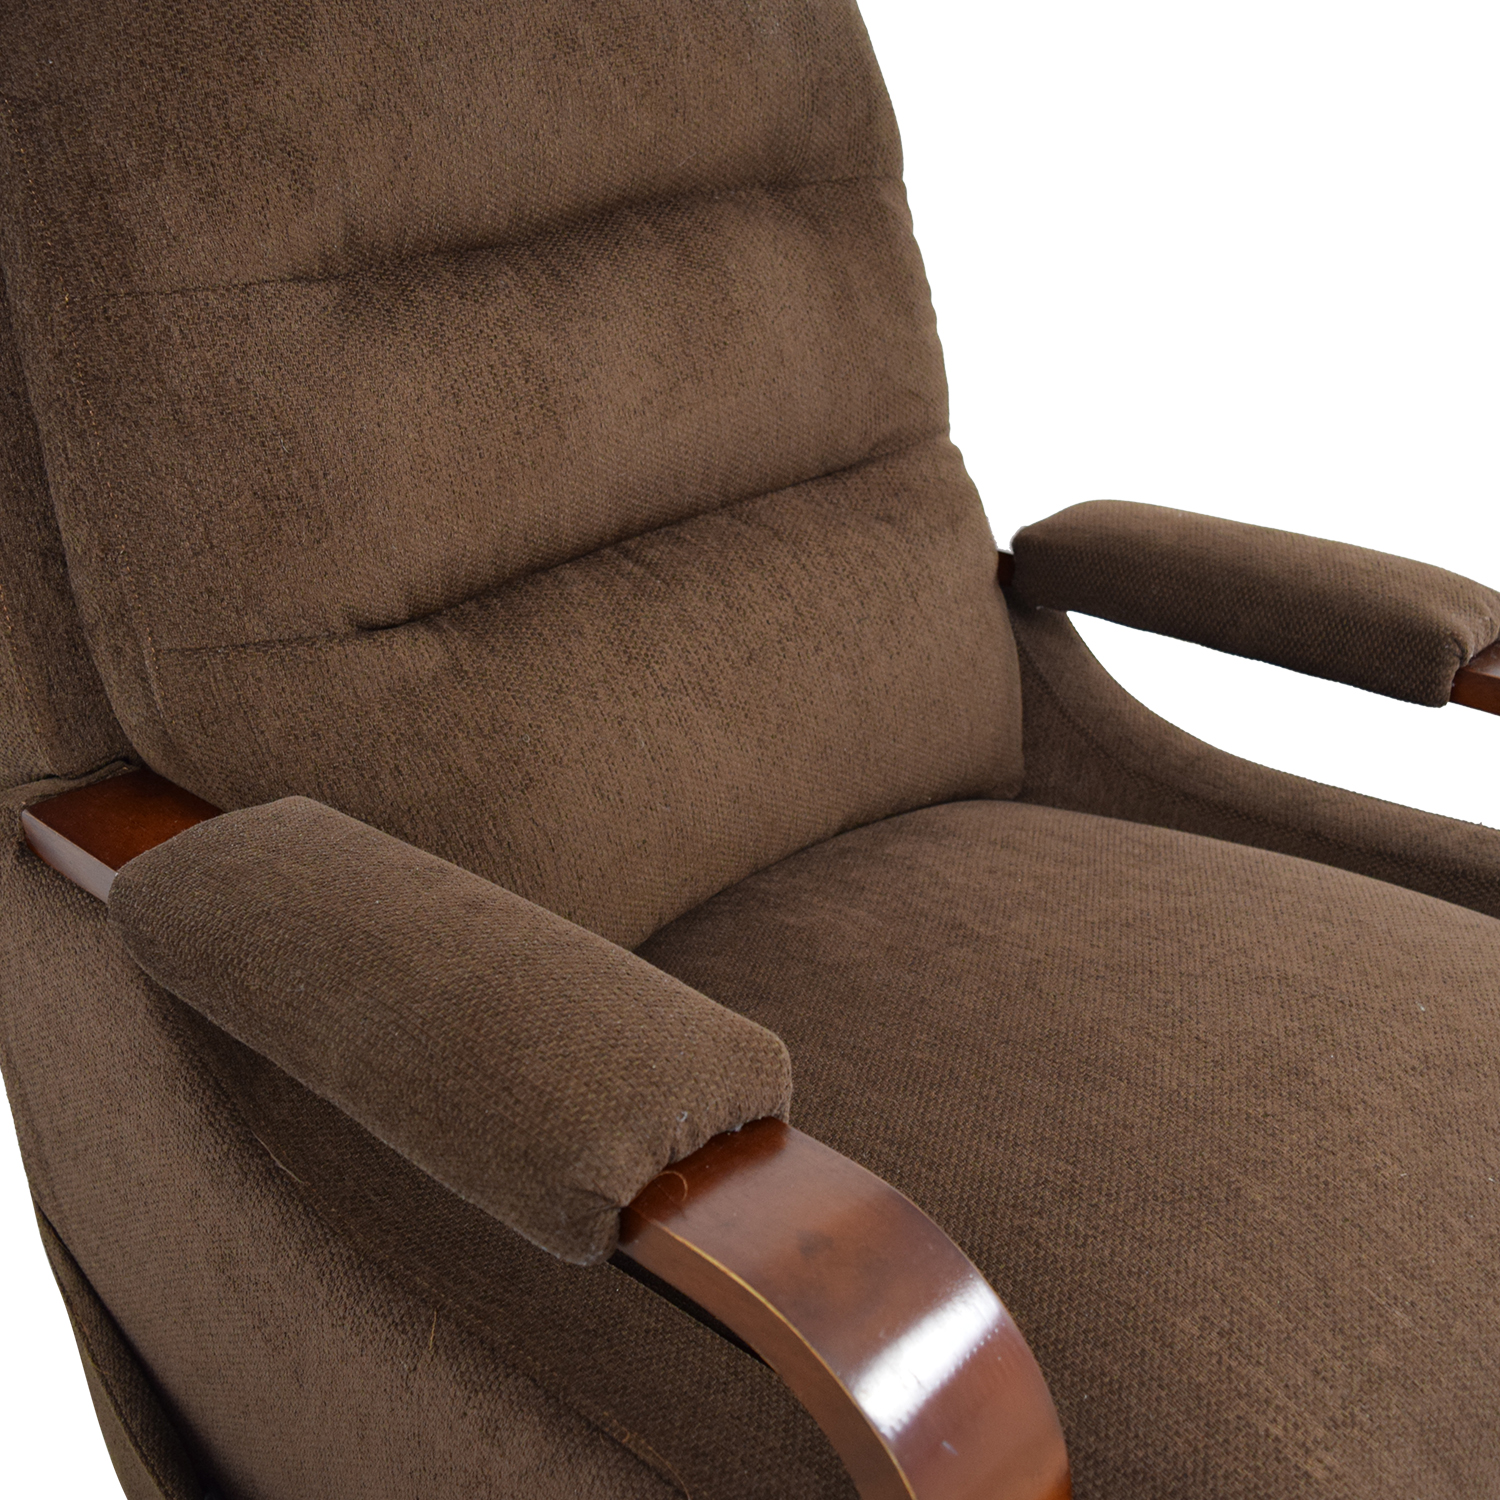 Bobs Furniture Brown Recliner Chair with Remote / Chairs